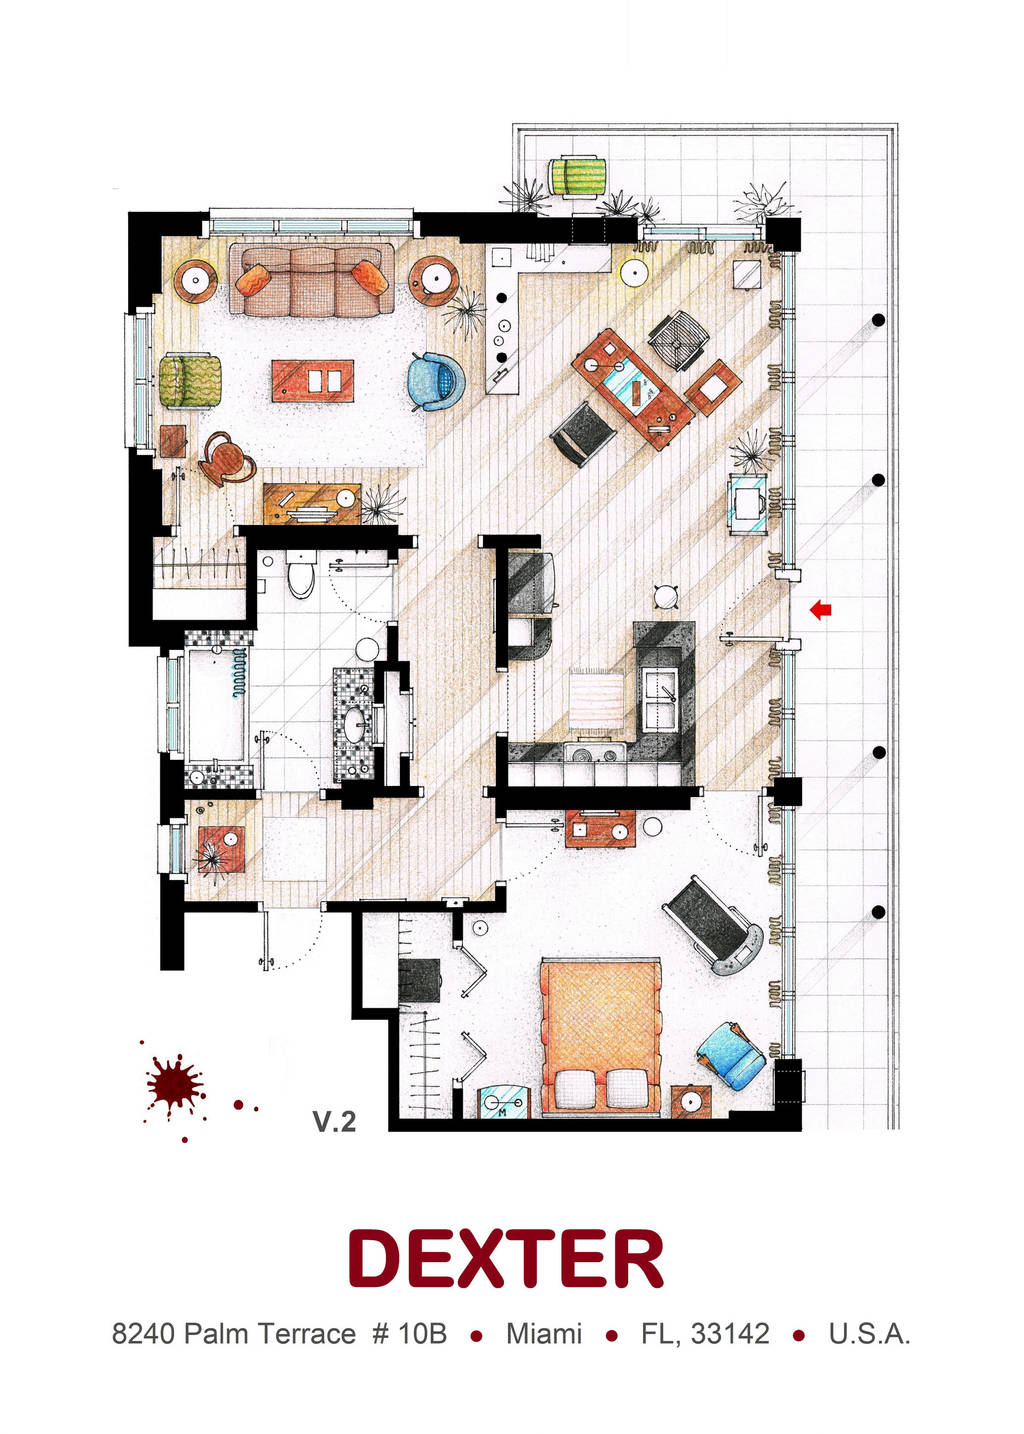 Floorplan of Dexter Morgan's Apartment v.2 by nikneuk